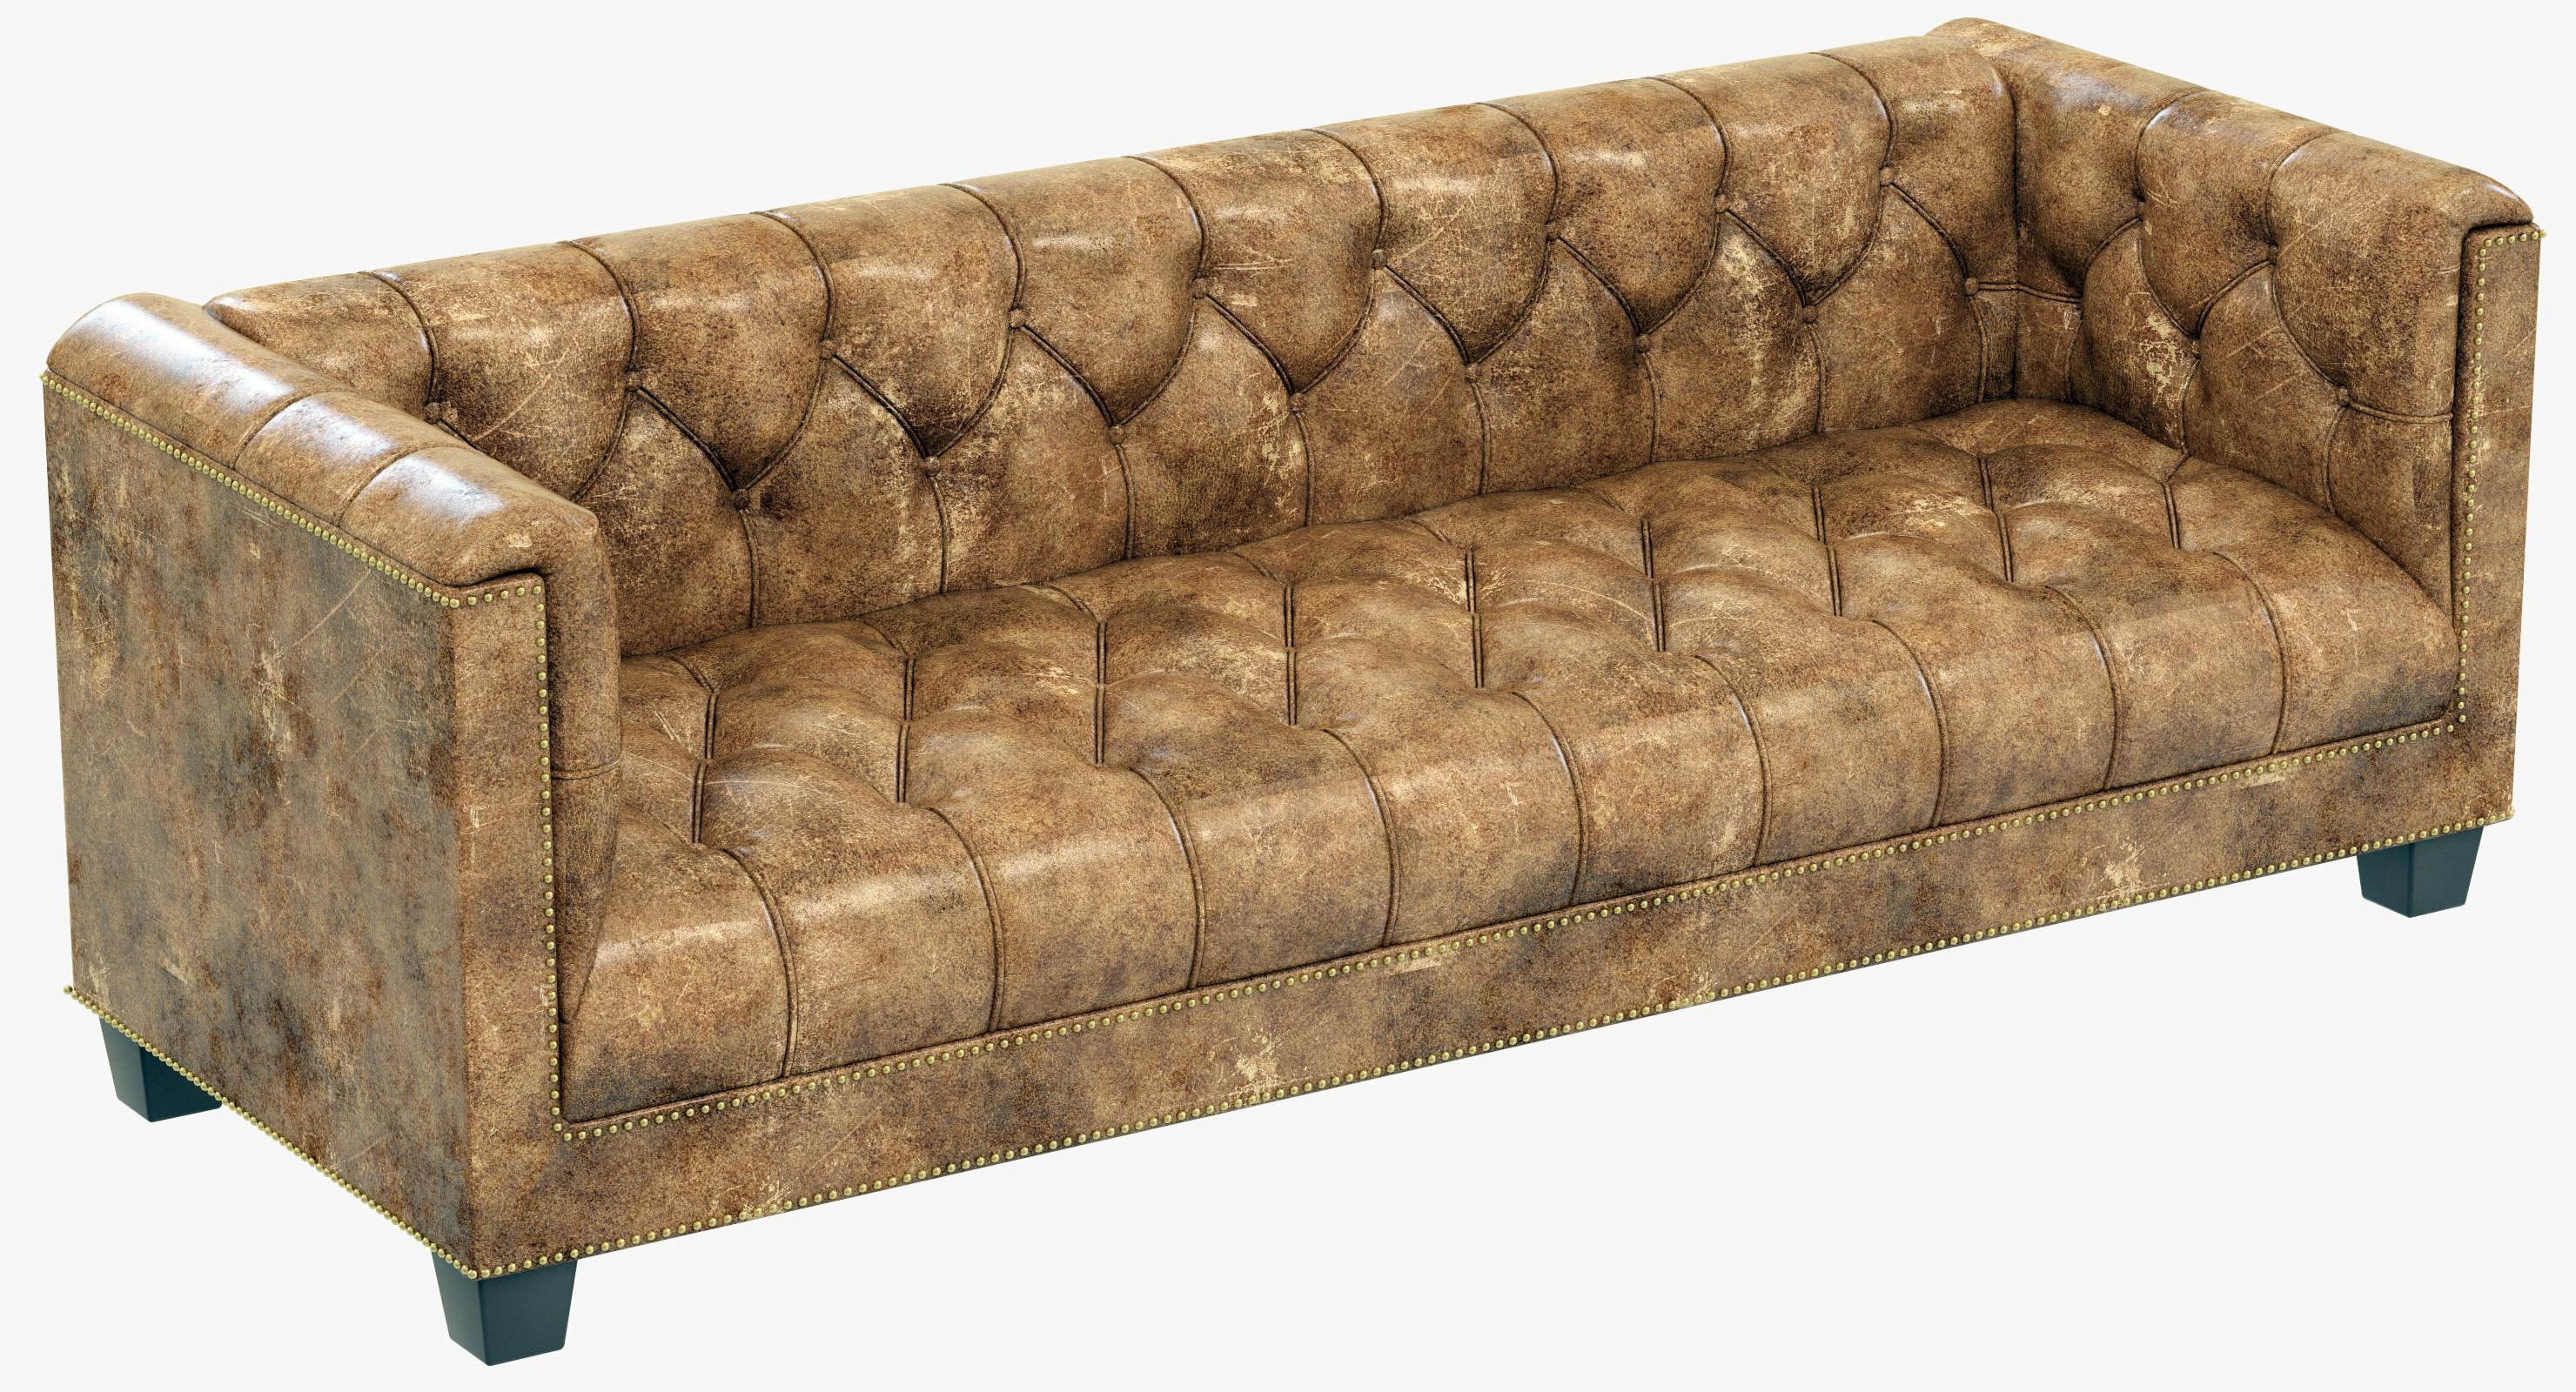 6 39 Savoy Sofa 3D Model Restoration Hardware Savoy Modern Sofa in Savoy Leather Sofas